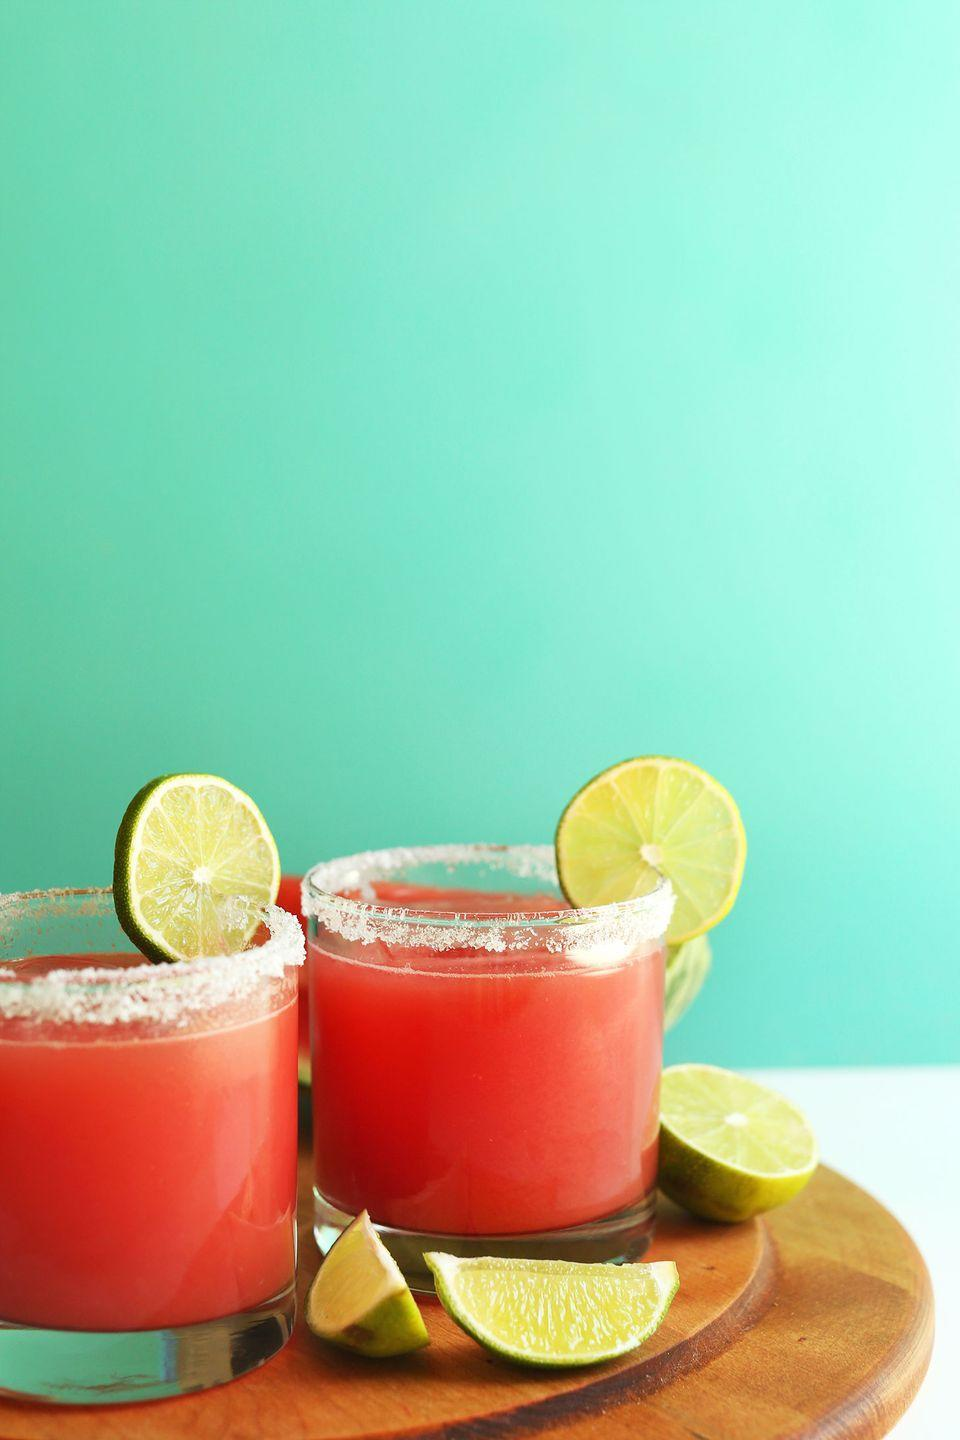 """<p>Adding tequila and lime to watermelon juice makes for an easy margarita.</p><p><strong>Get the recipe at <a href=""""https://minimalistbaker.com/best-watermelon-margaritas-3-ingredients/"""" rel=""""nofollow noopener"""" target=""""_blank"""" data-ylk=""""slk:Minimalist Baker"""" class=""""link rapid-noclick-resp"""">Minimalist Baker</a>.</strong></p><p><strong><strong><a class=""""link rapid-noclick-resp"""" href=""""https://go.redirectingat.com?id=74968X1596630&url=https%3A%2F%2Fwww.walmart.com%2Fip%2FInstant-Pot-Ace-60-Cooking-Blender%2F626991948&sref=https%3A%2F%2Fwww.thepioneerwoman.com%2Ffood-cooking%2Fmeals-menus%2Fg32147587%2Fwatermelon-drink-recipes%2F"""" rel=""""nofollow noopener"""" target=""""_blank"""" data-ylk=""""slk:SHOP BLENDERS"""">SHOP BLENDERS</a></strong><br></strong></p>"""